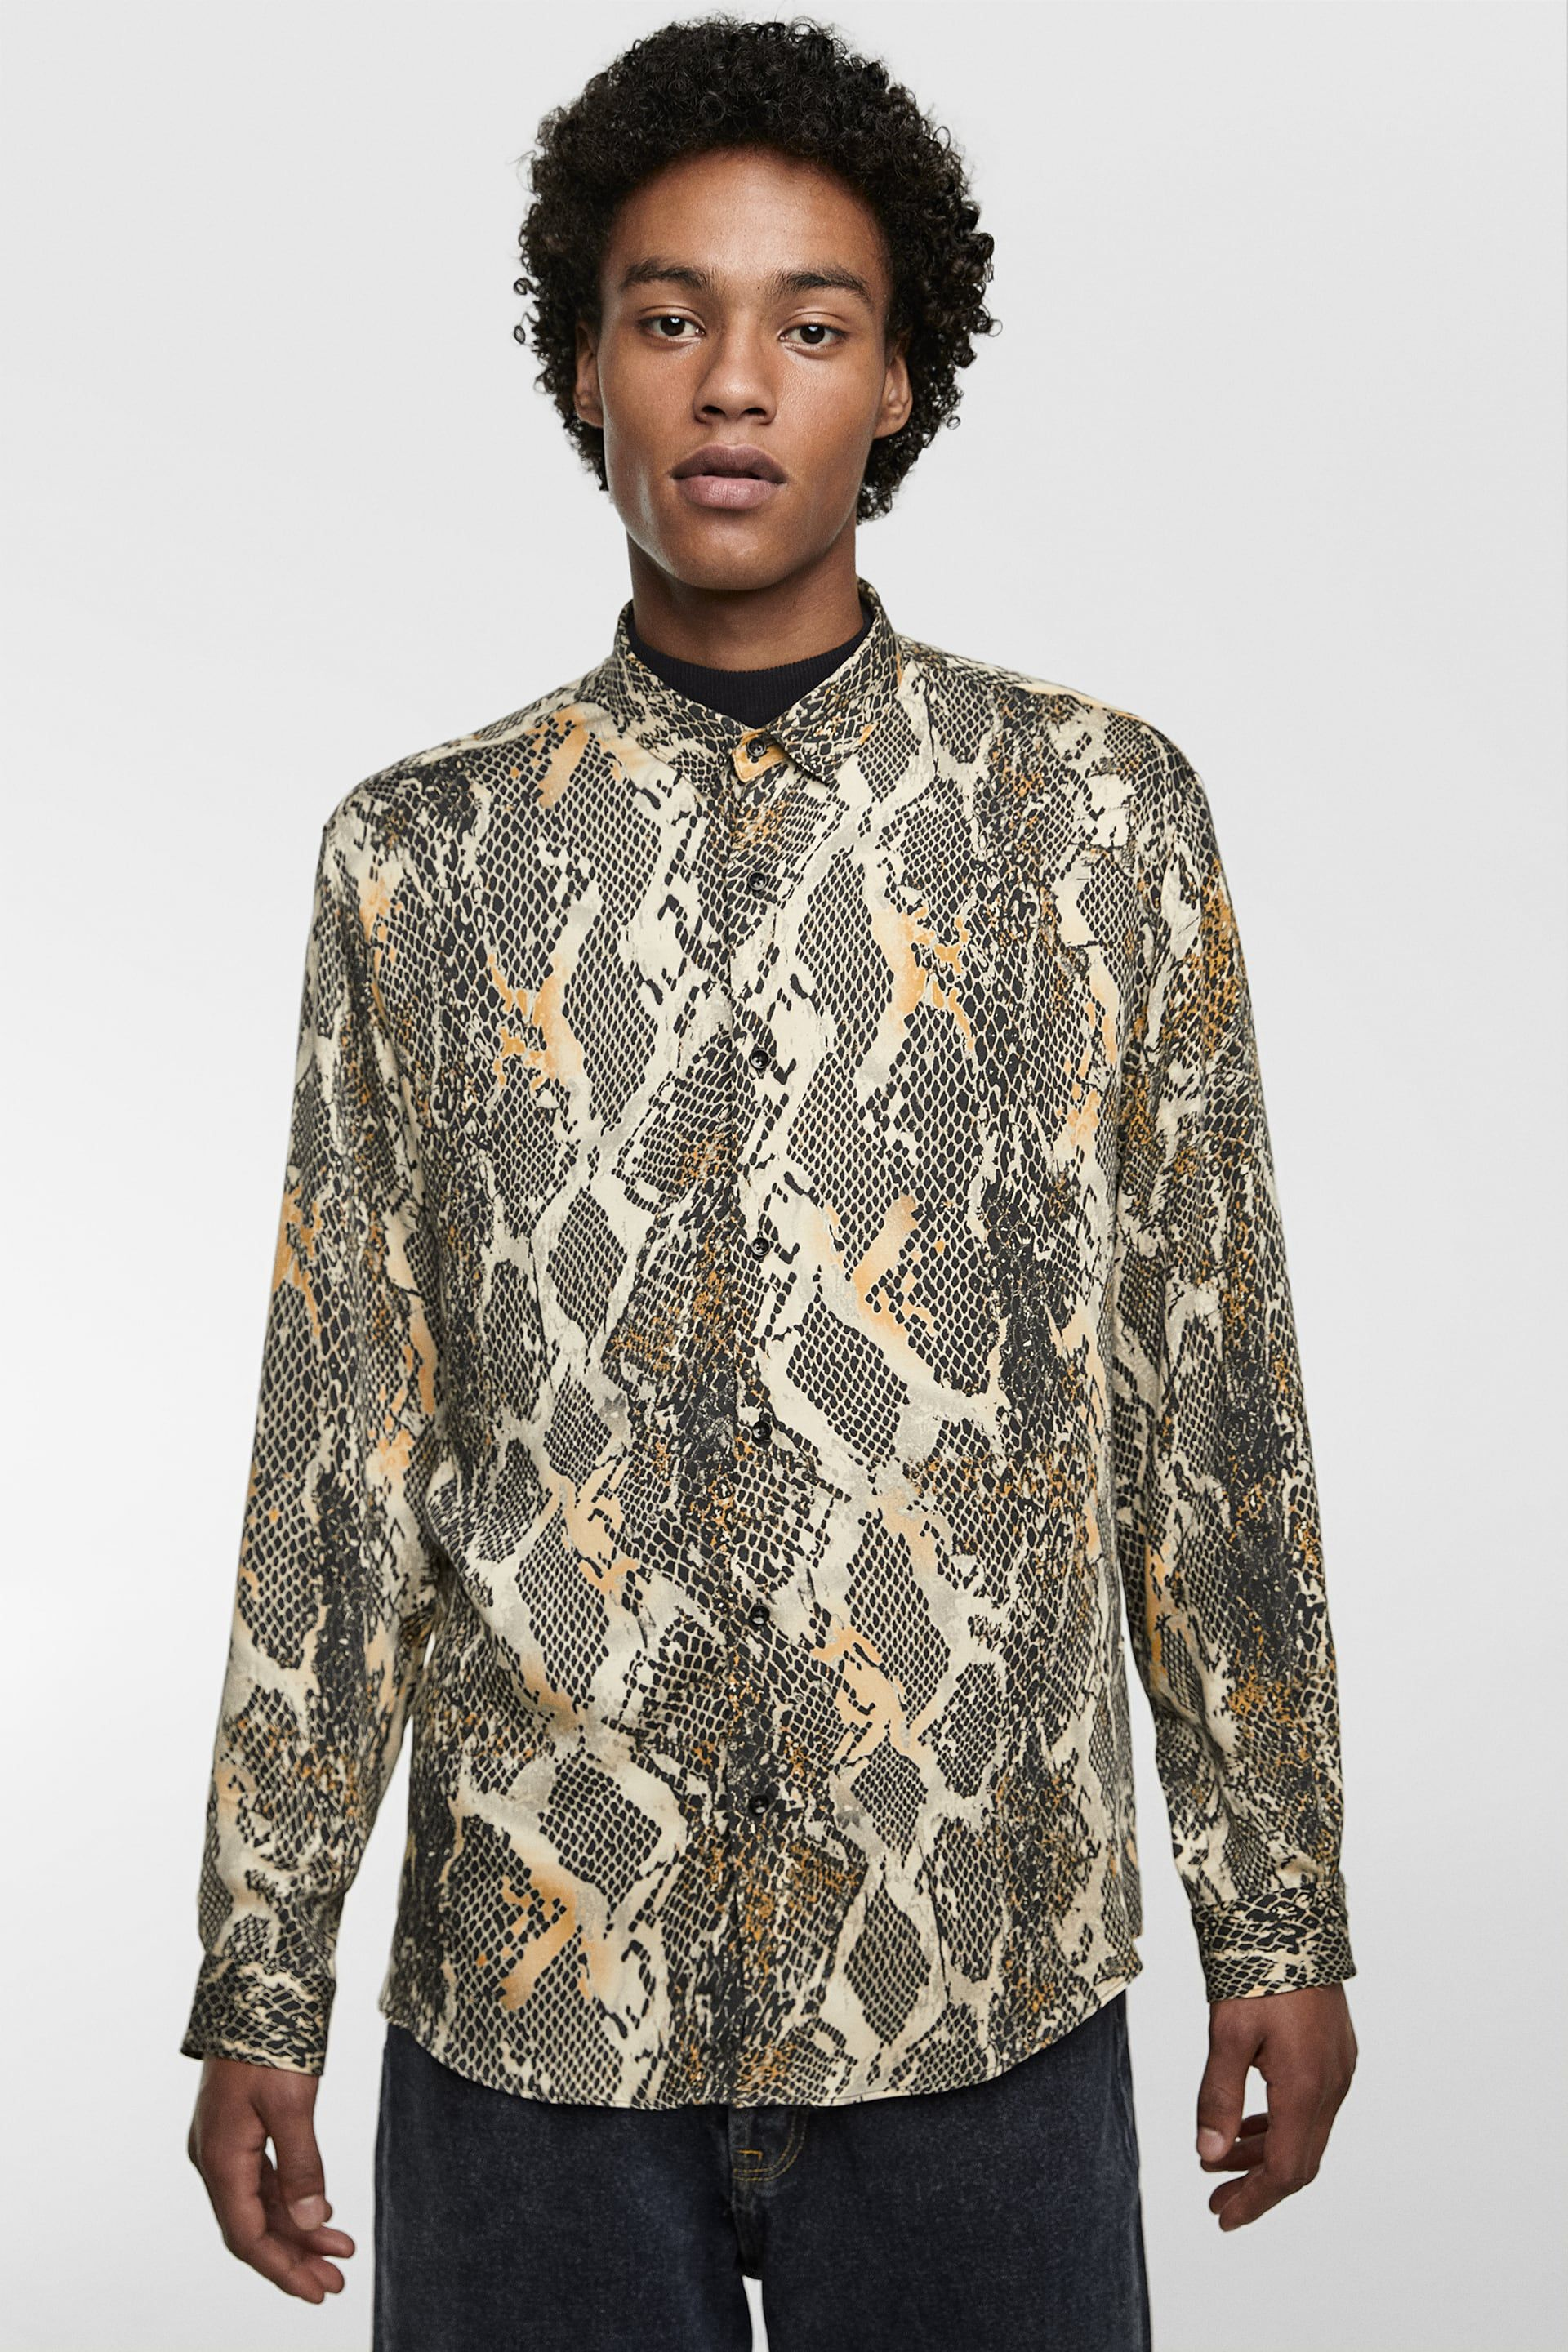 07a05c61 SNAKE PRINT SHIRT | Snakeskin Shirts for Men in 2019 | Mens printed ...